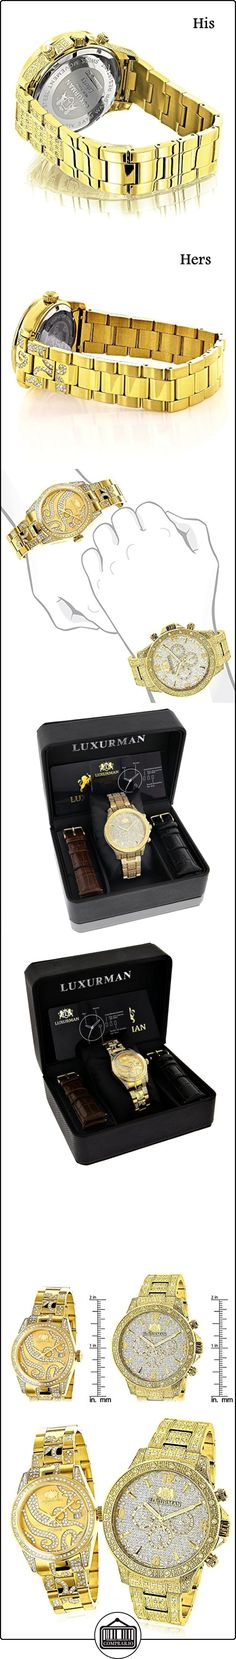 His and Hers Watches: LUXURMAN Diamond Watch Set Yellow Gold Plated 4.25ct  ✿ Relojes para mujer - (Lujo) ✿